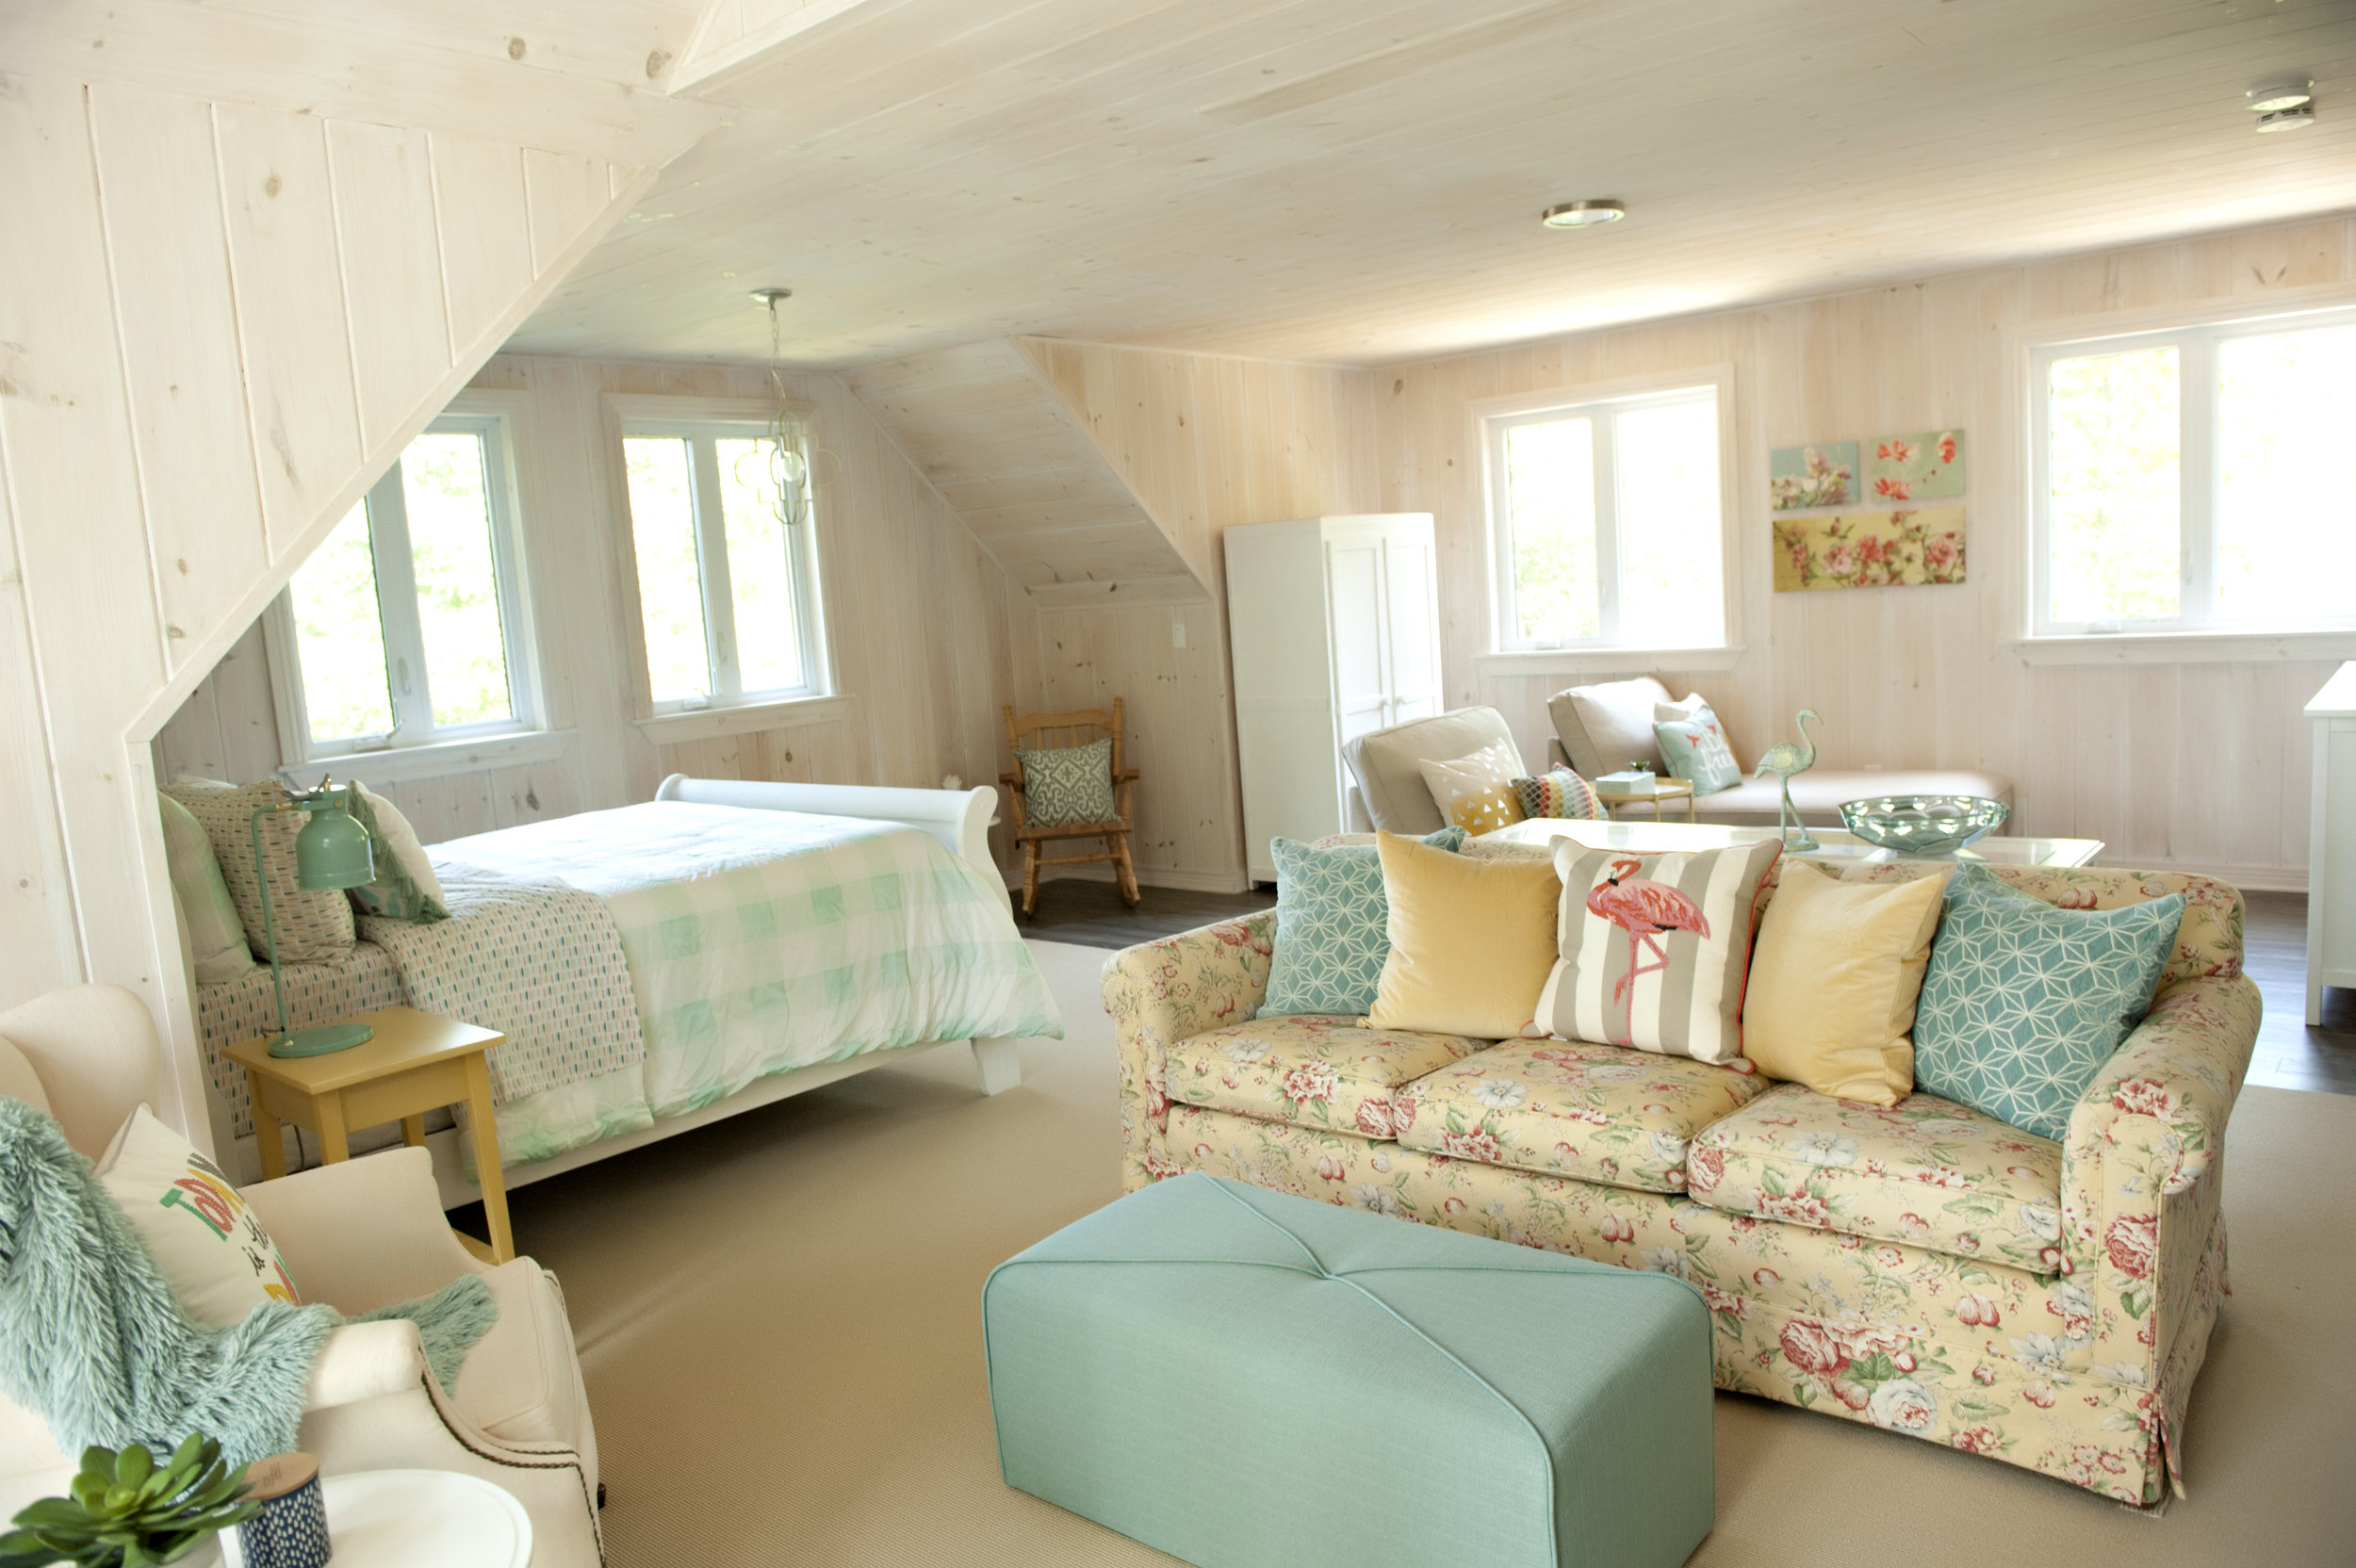 Candace-Plotz-Design-Beach-House-1-Project-Bed-and-Sofa-Yellow-Pastels-Wood